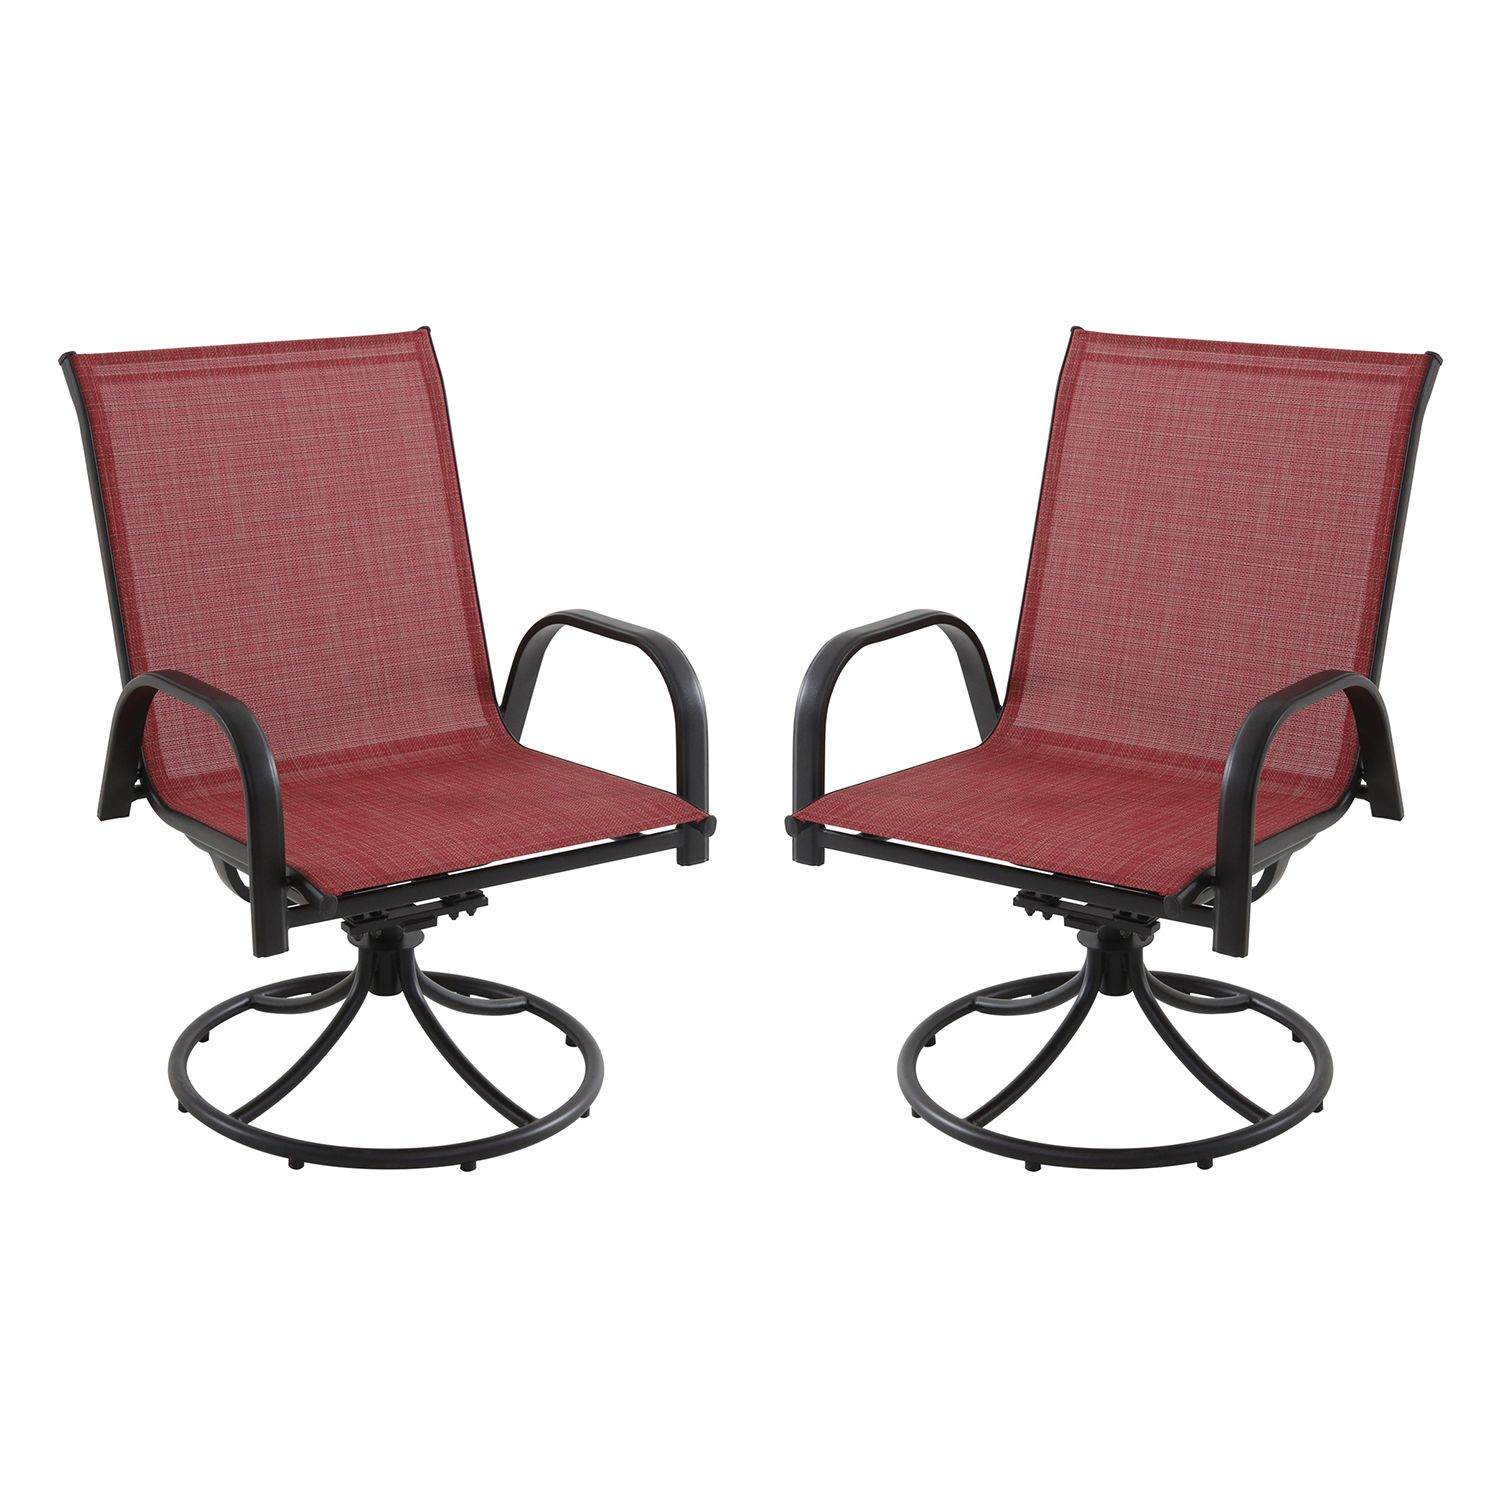 patio chairs kohl s rh kohls com Game Chair Kohl's Kohl's Butterfly Chair